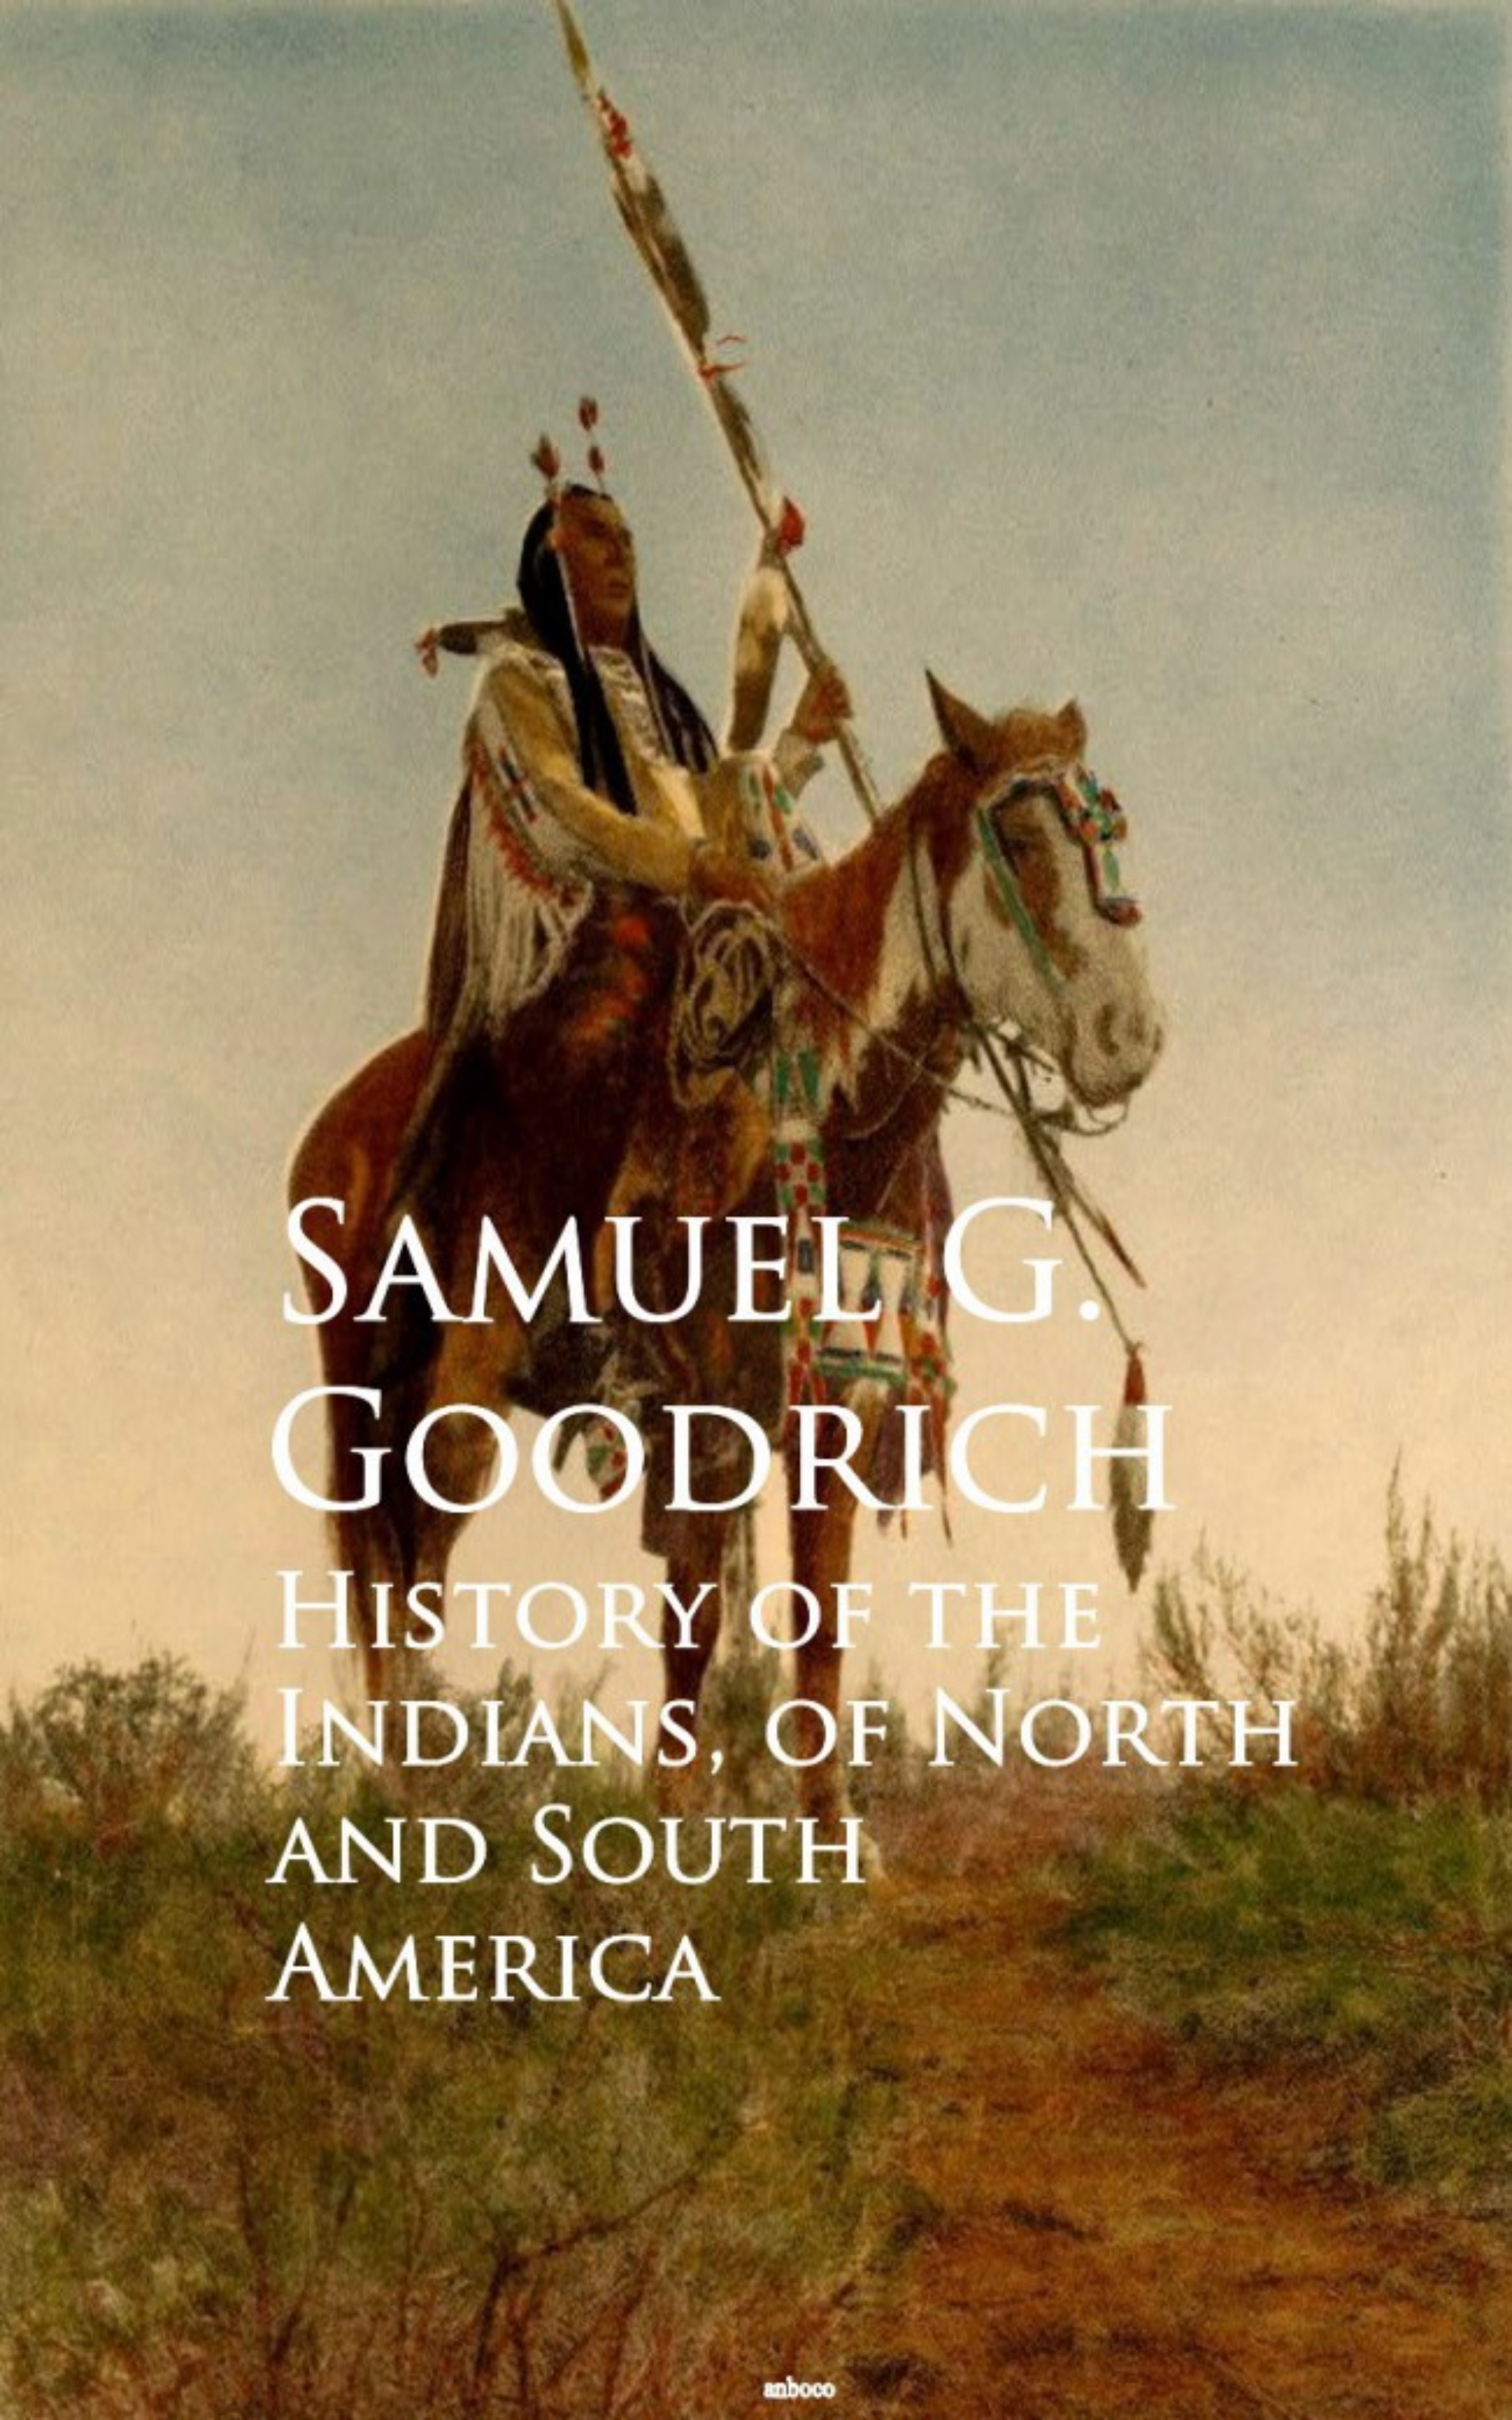 Samuel G. Goodrich History of the Indians, of North and South America the democratic developmental state north south perspectives